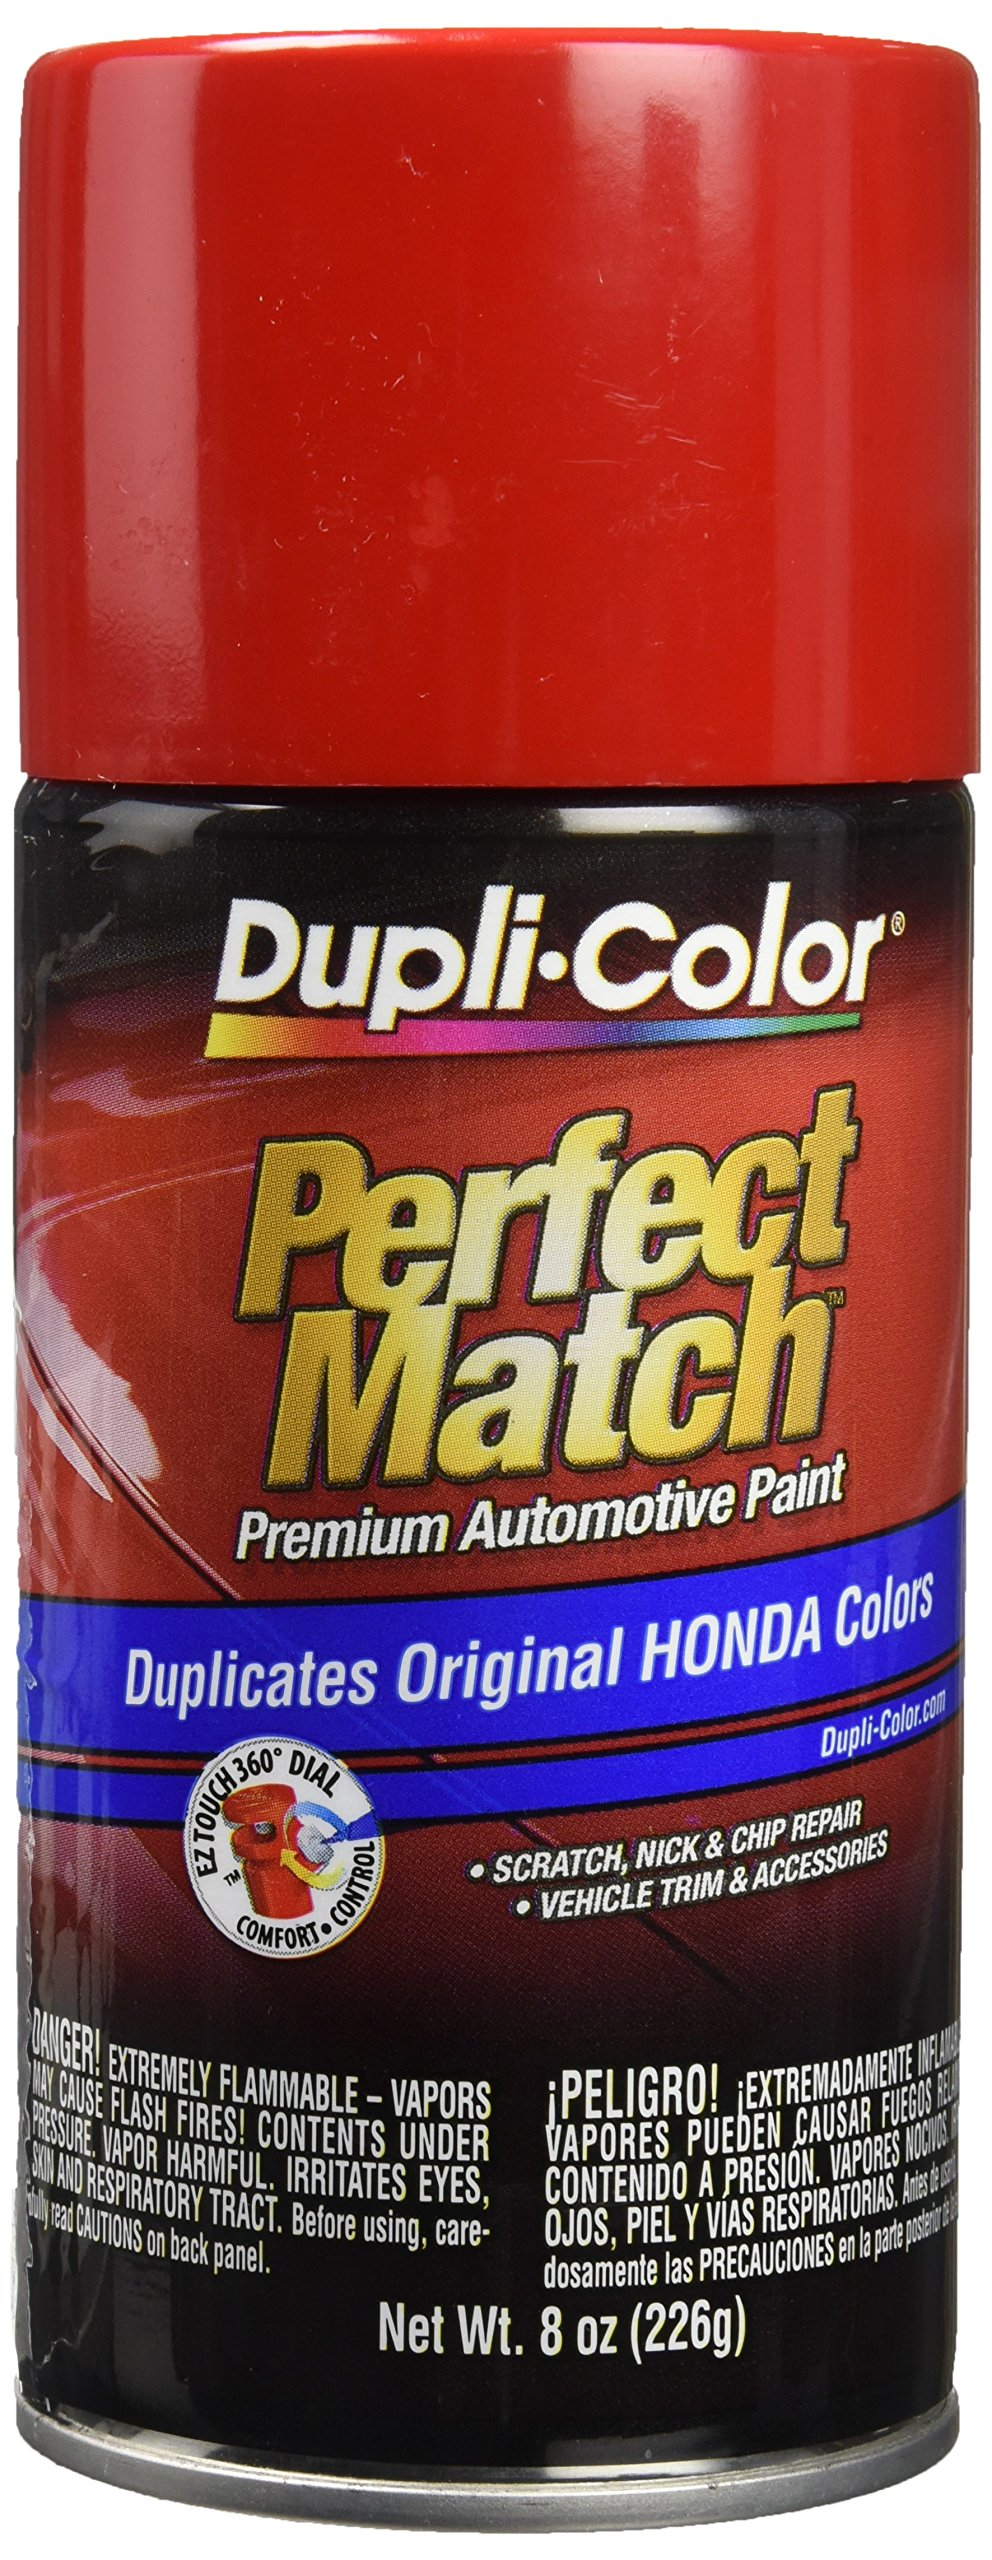 Dupli-Color EBHA09750 Red 8 Oz Rallye Red R513 Perfect Match Premium Automotive Paint, 8 Oz by Dupli-Color